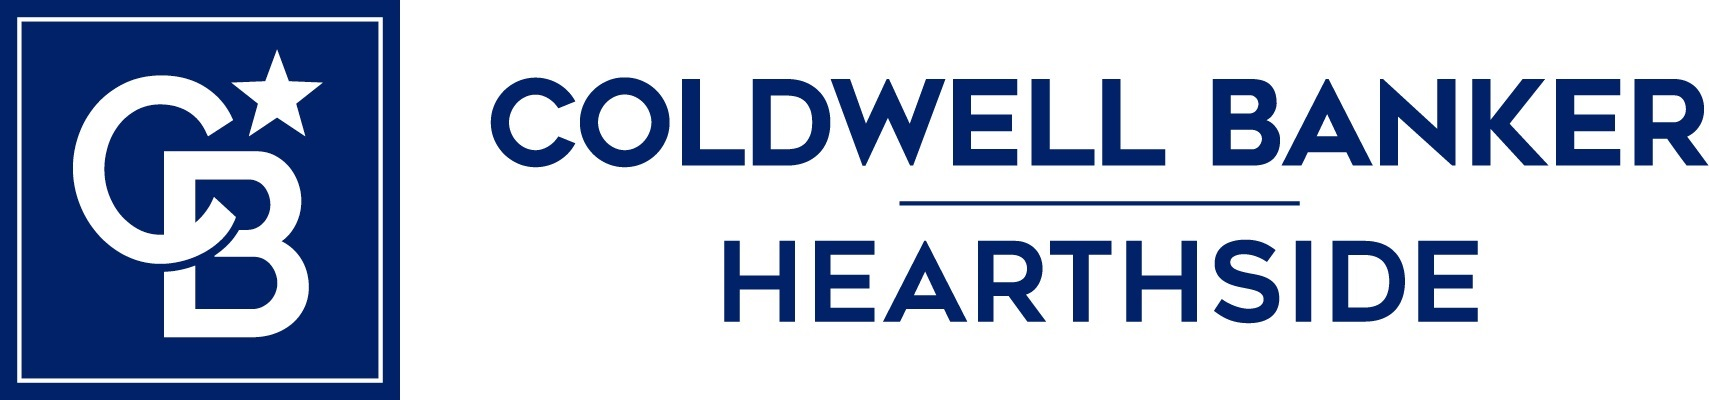 Tracy Germain - Coldwell Banker Hearthside